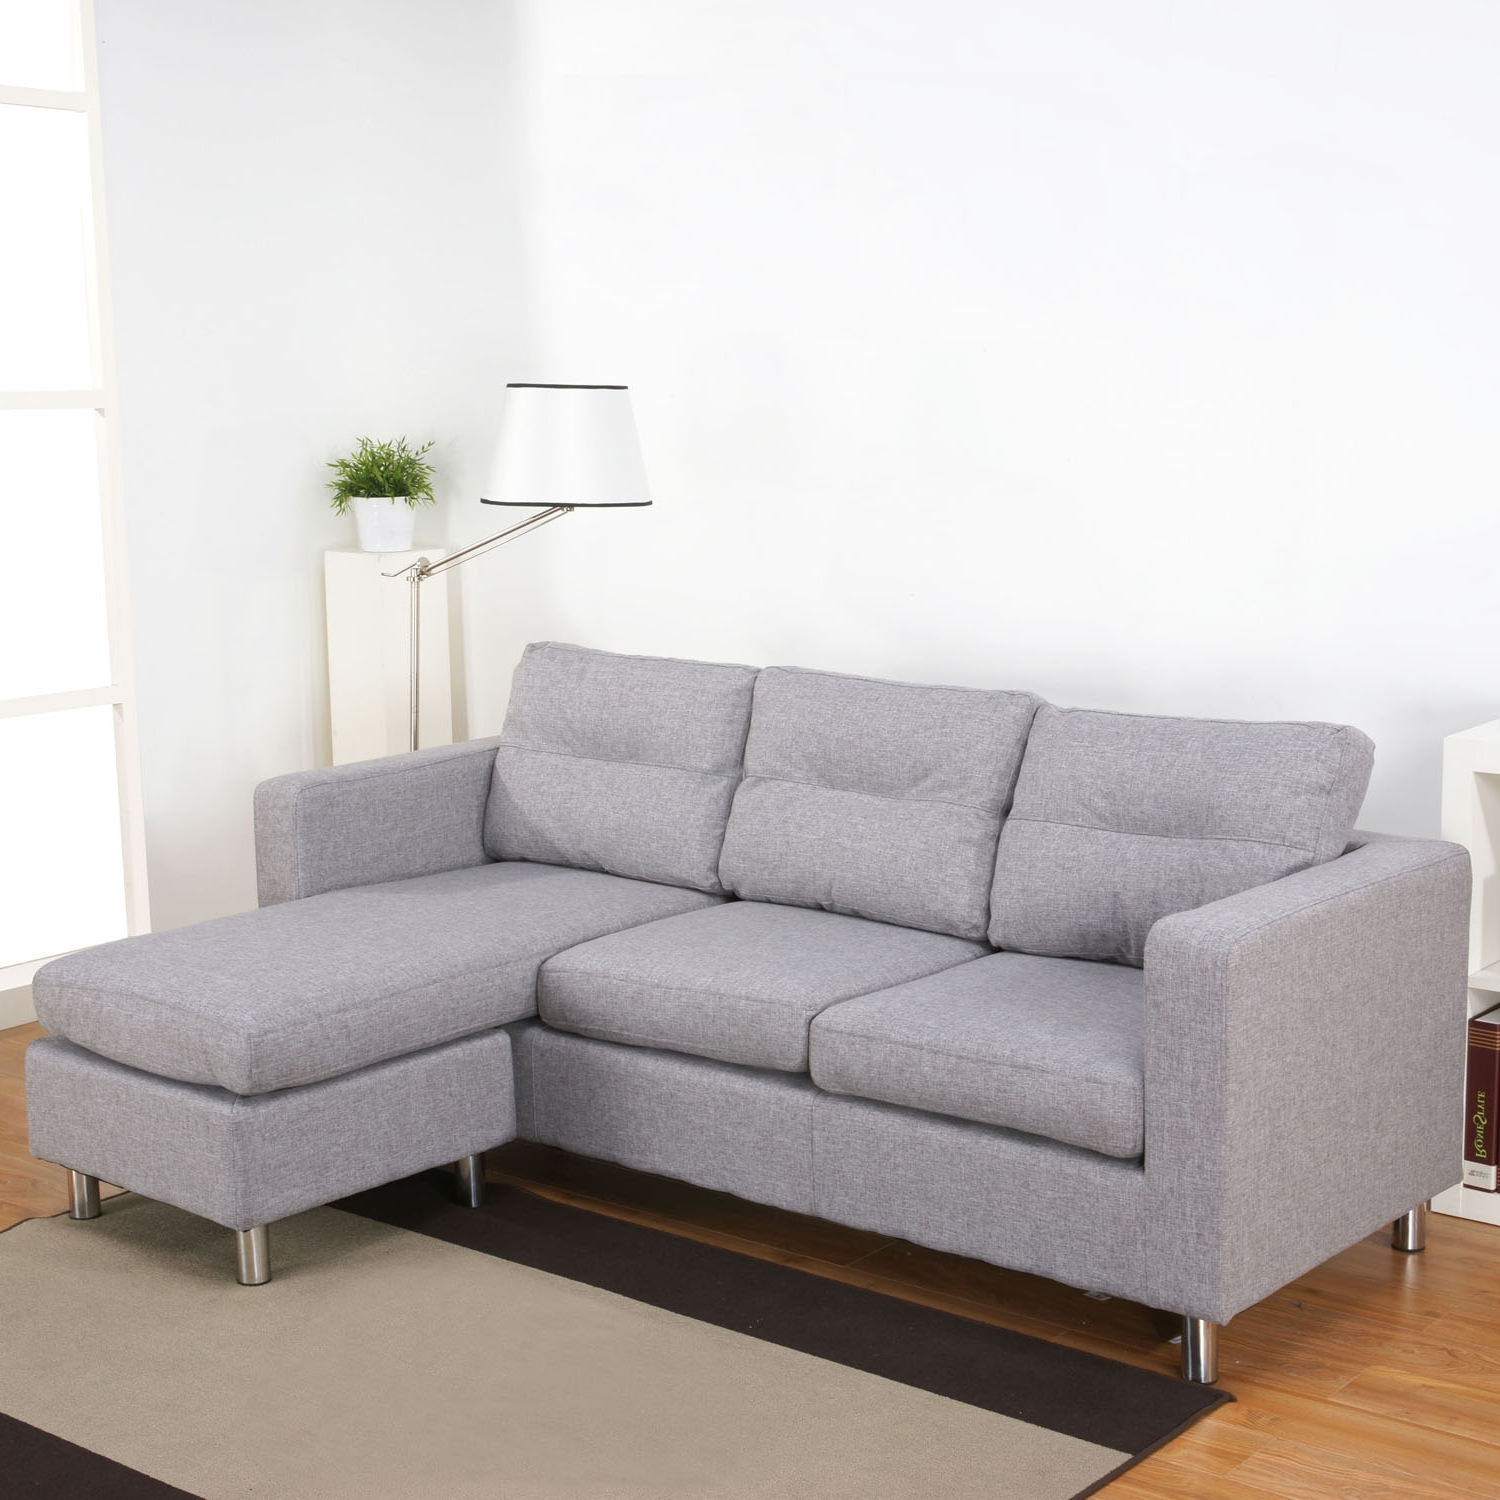 Grey Sofa Chaises With Regard To Trendy Gray Sectional Sofas With Chaise (View 8 of 15)